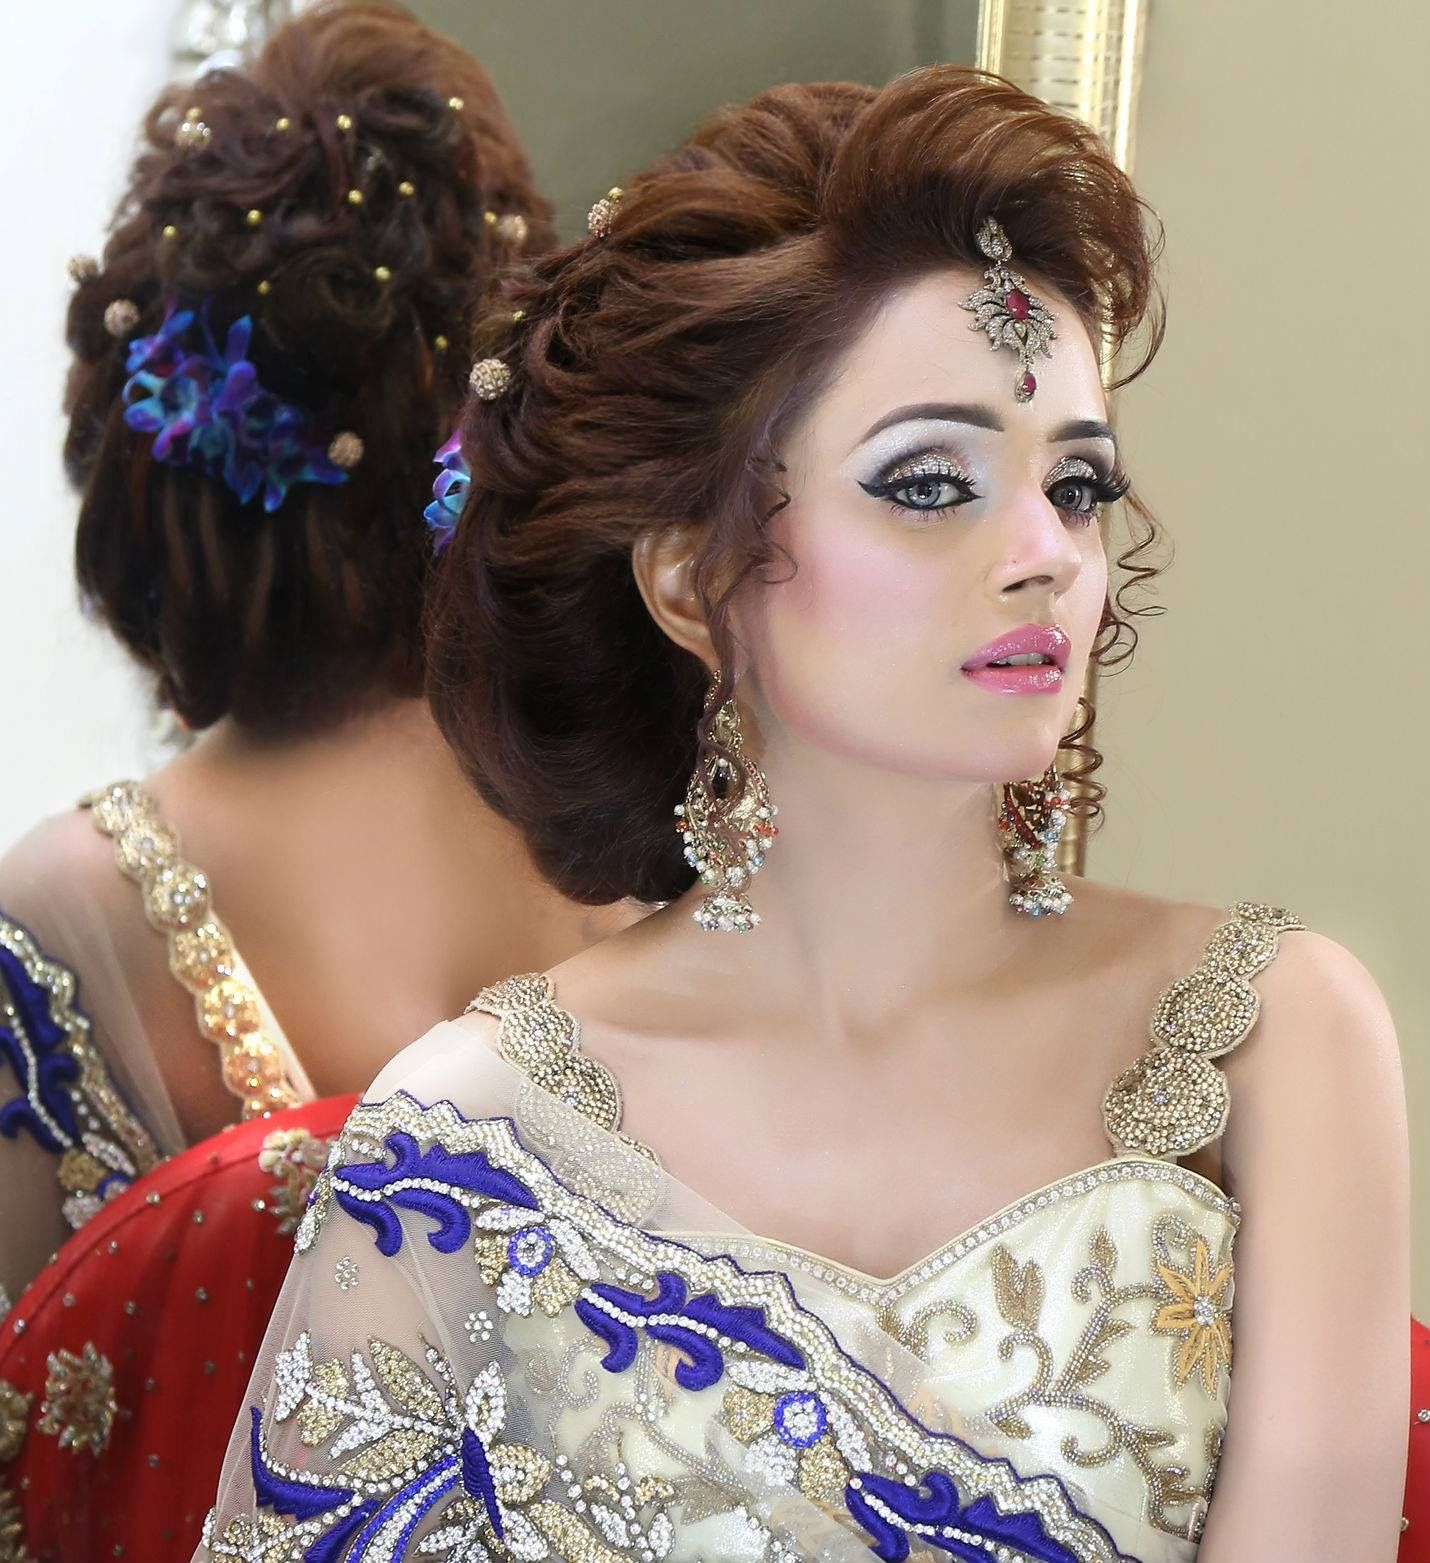 Wedding Hairstyle And Makeup: Pin By EshA AteEq 🇵🇰 On KASHEE's Makeup Expert....